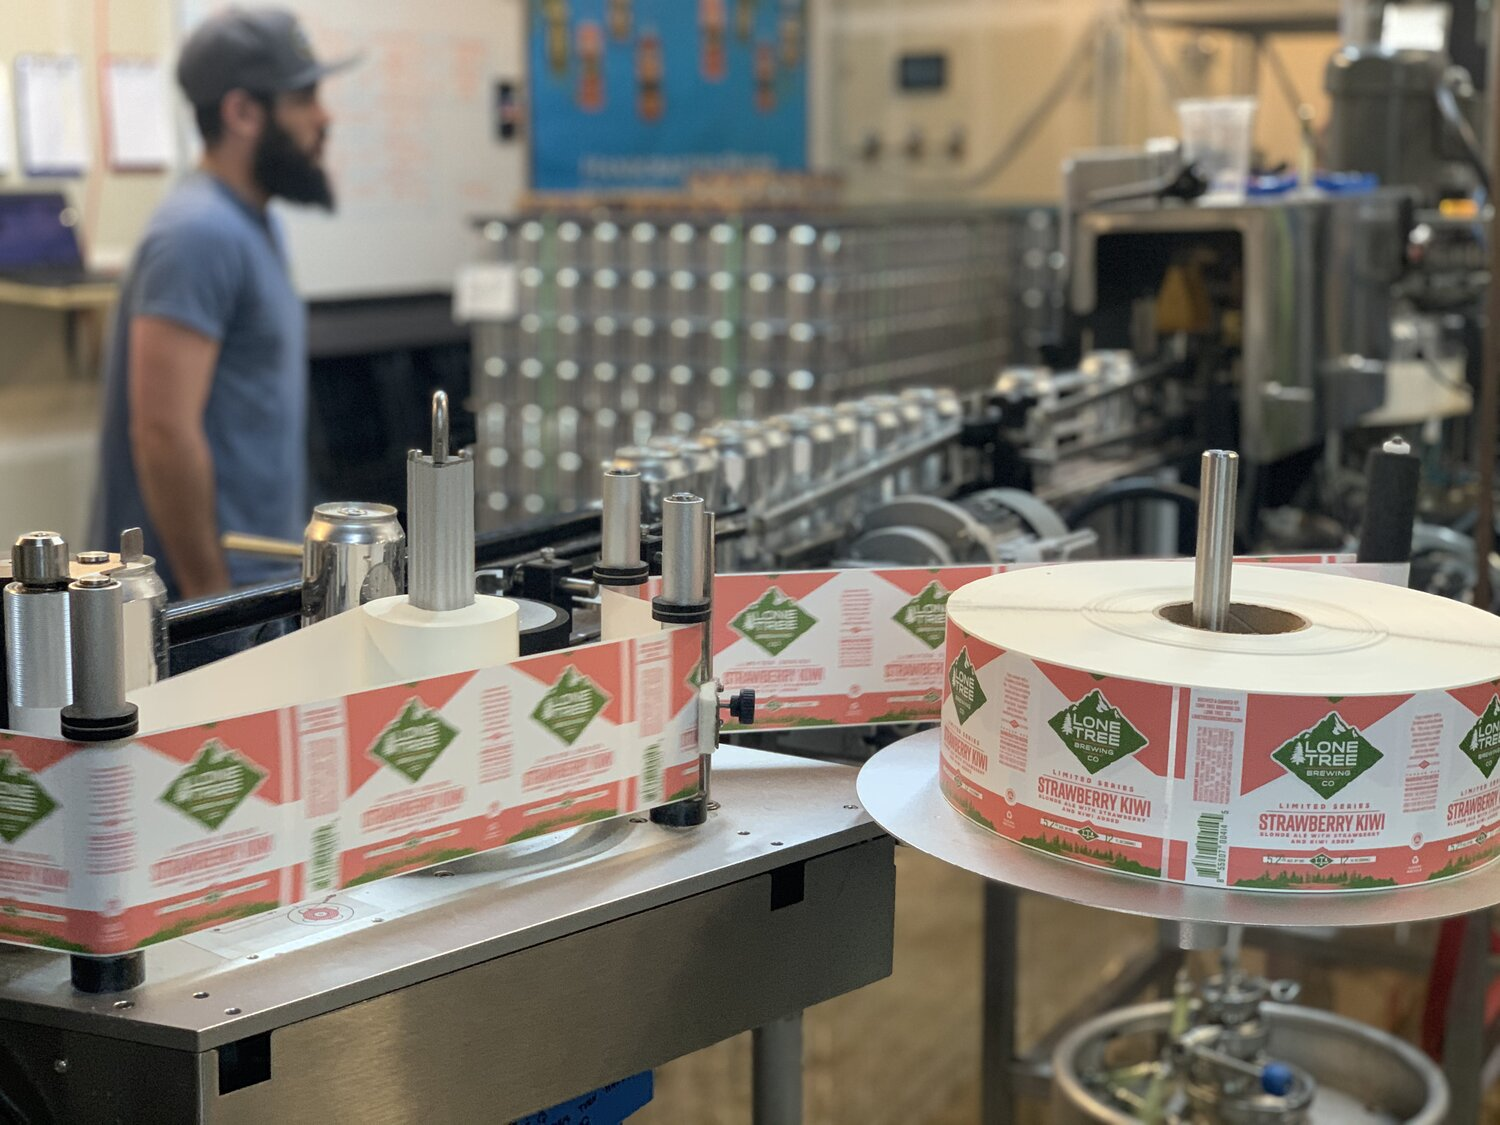 Lone Tree Brewing Rolls Out First-Ever Year-Round IPA, Castle Rock Pale Ale, And Strawberry Kiwi Blonde Ale